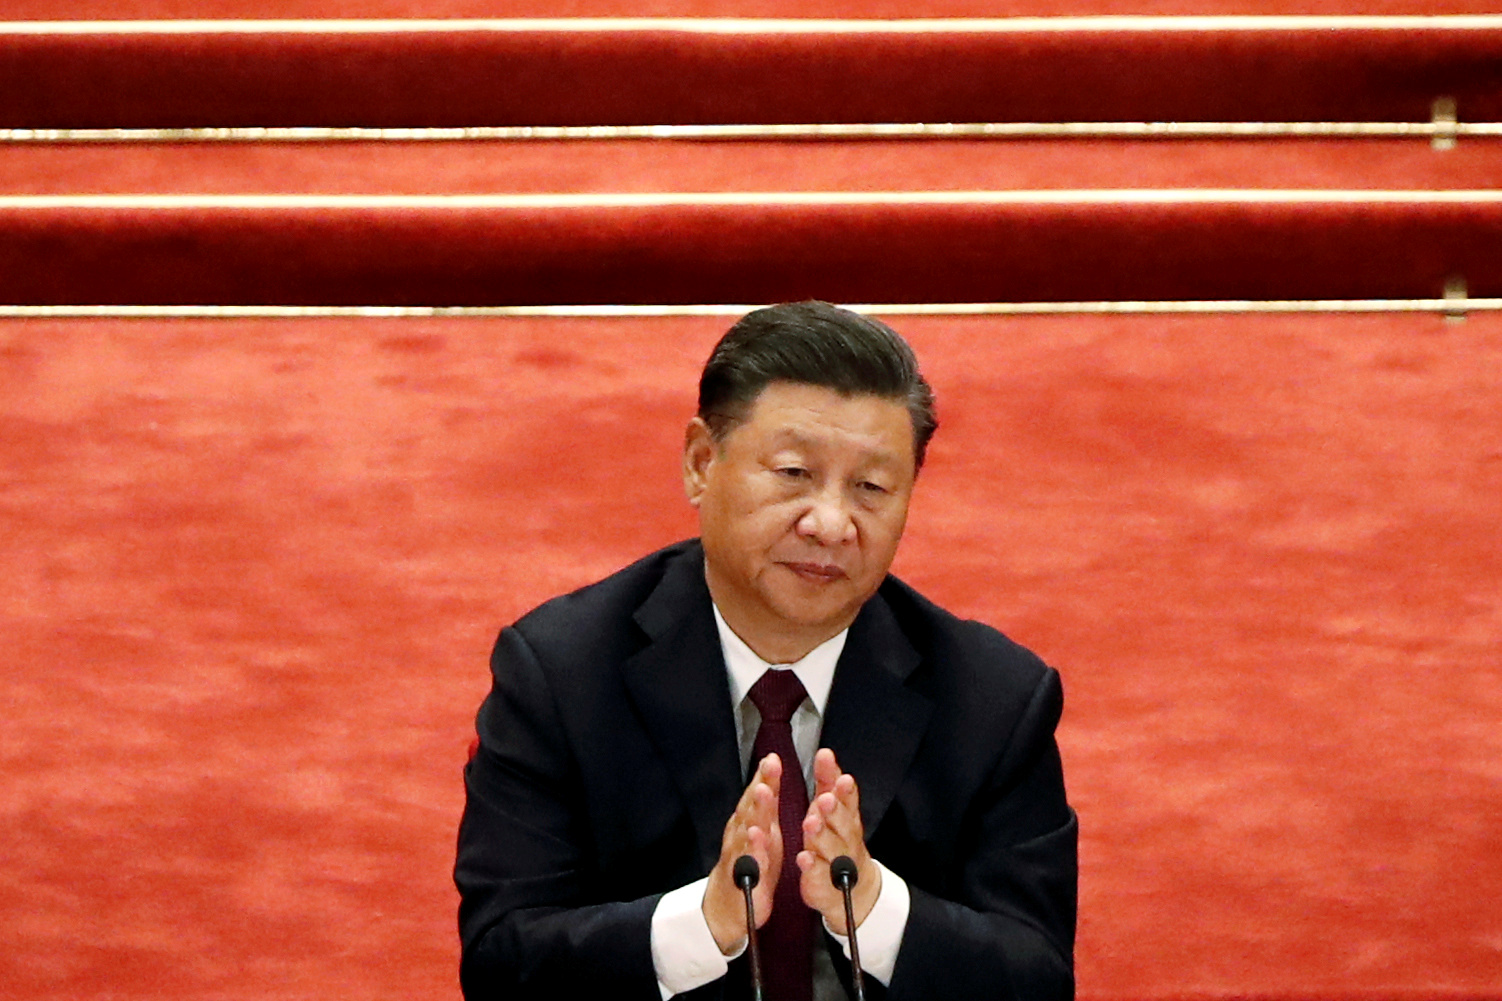 Chinese President Xi Jinping applauds during a meeting to commend role models in China's fight against the coronavirus disease (COVID-19) outbreak, at the Great Hall of the People in Beijing, China September 8, 2020. REUTERS/Carlos Garcia Rawlins/File Photo